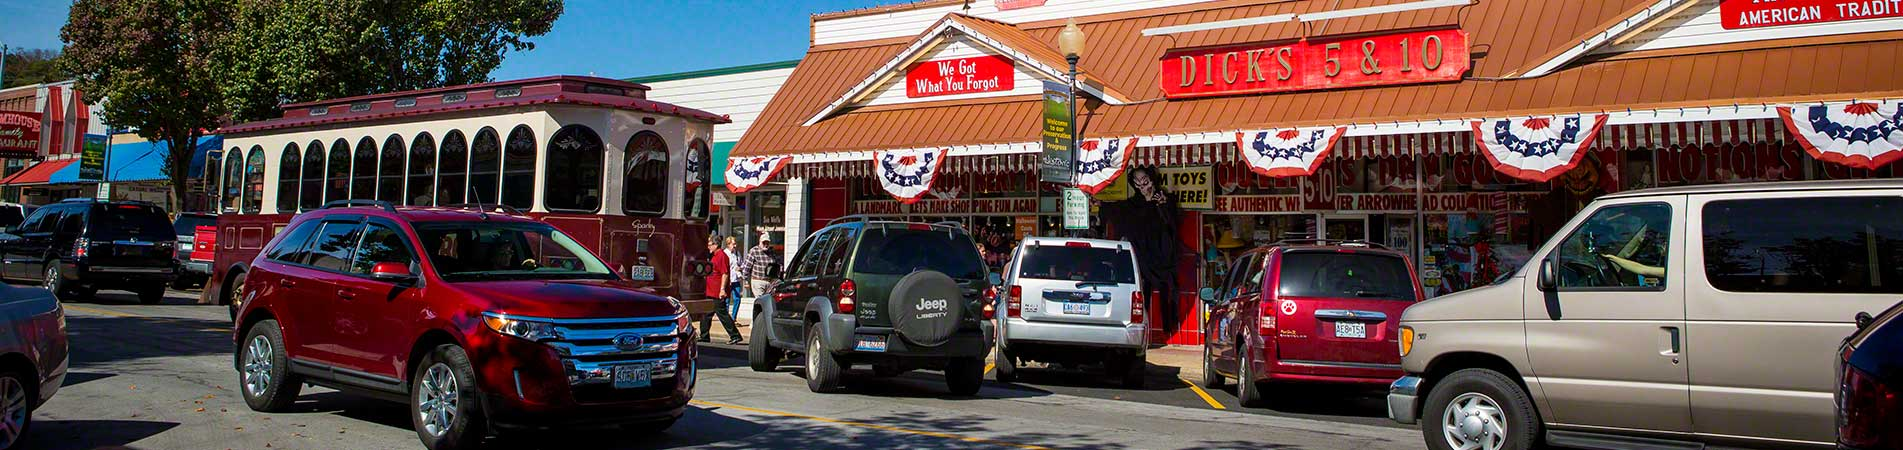 One of the most accurate small town pictures of Branson, Missouri.